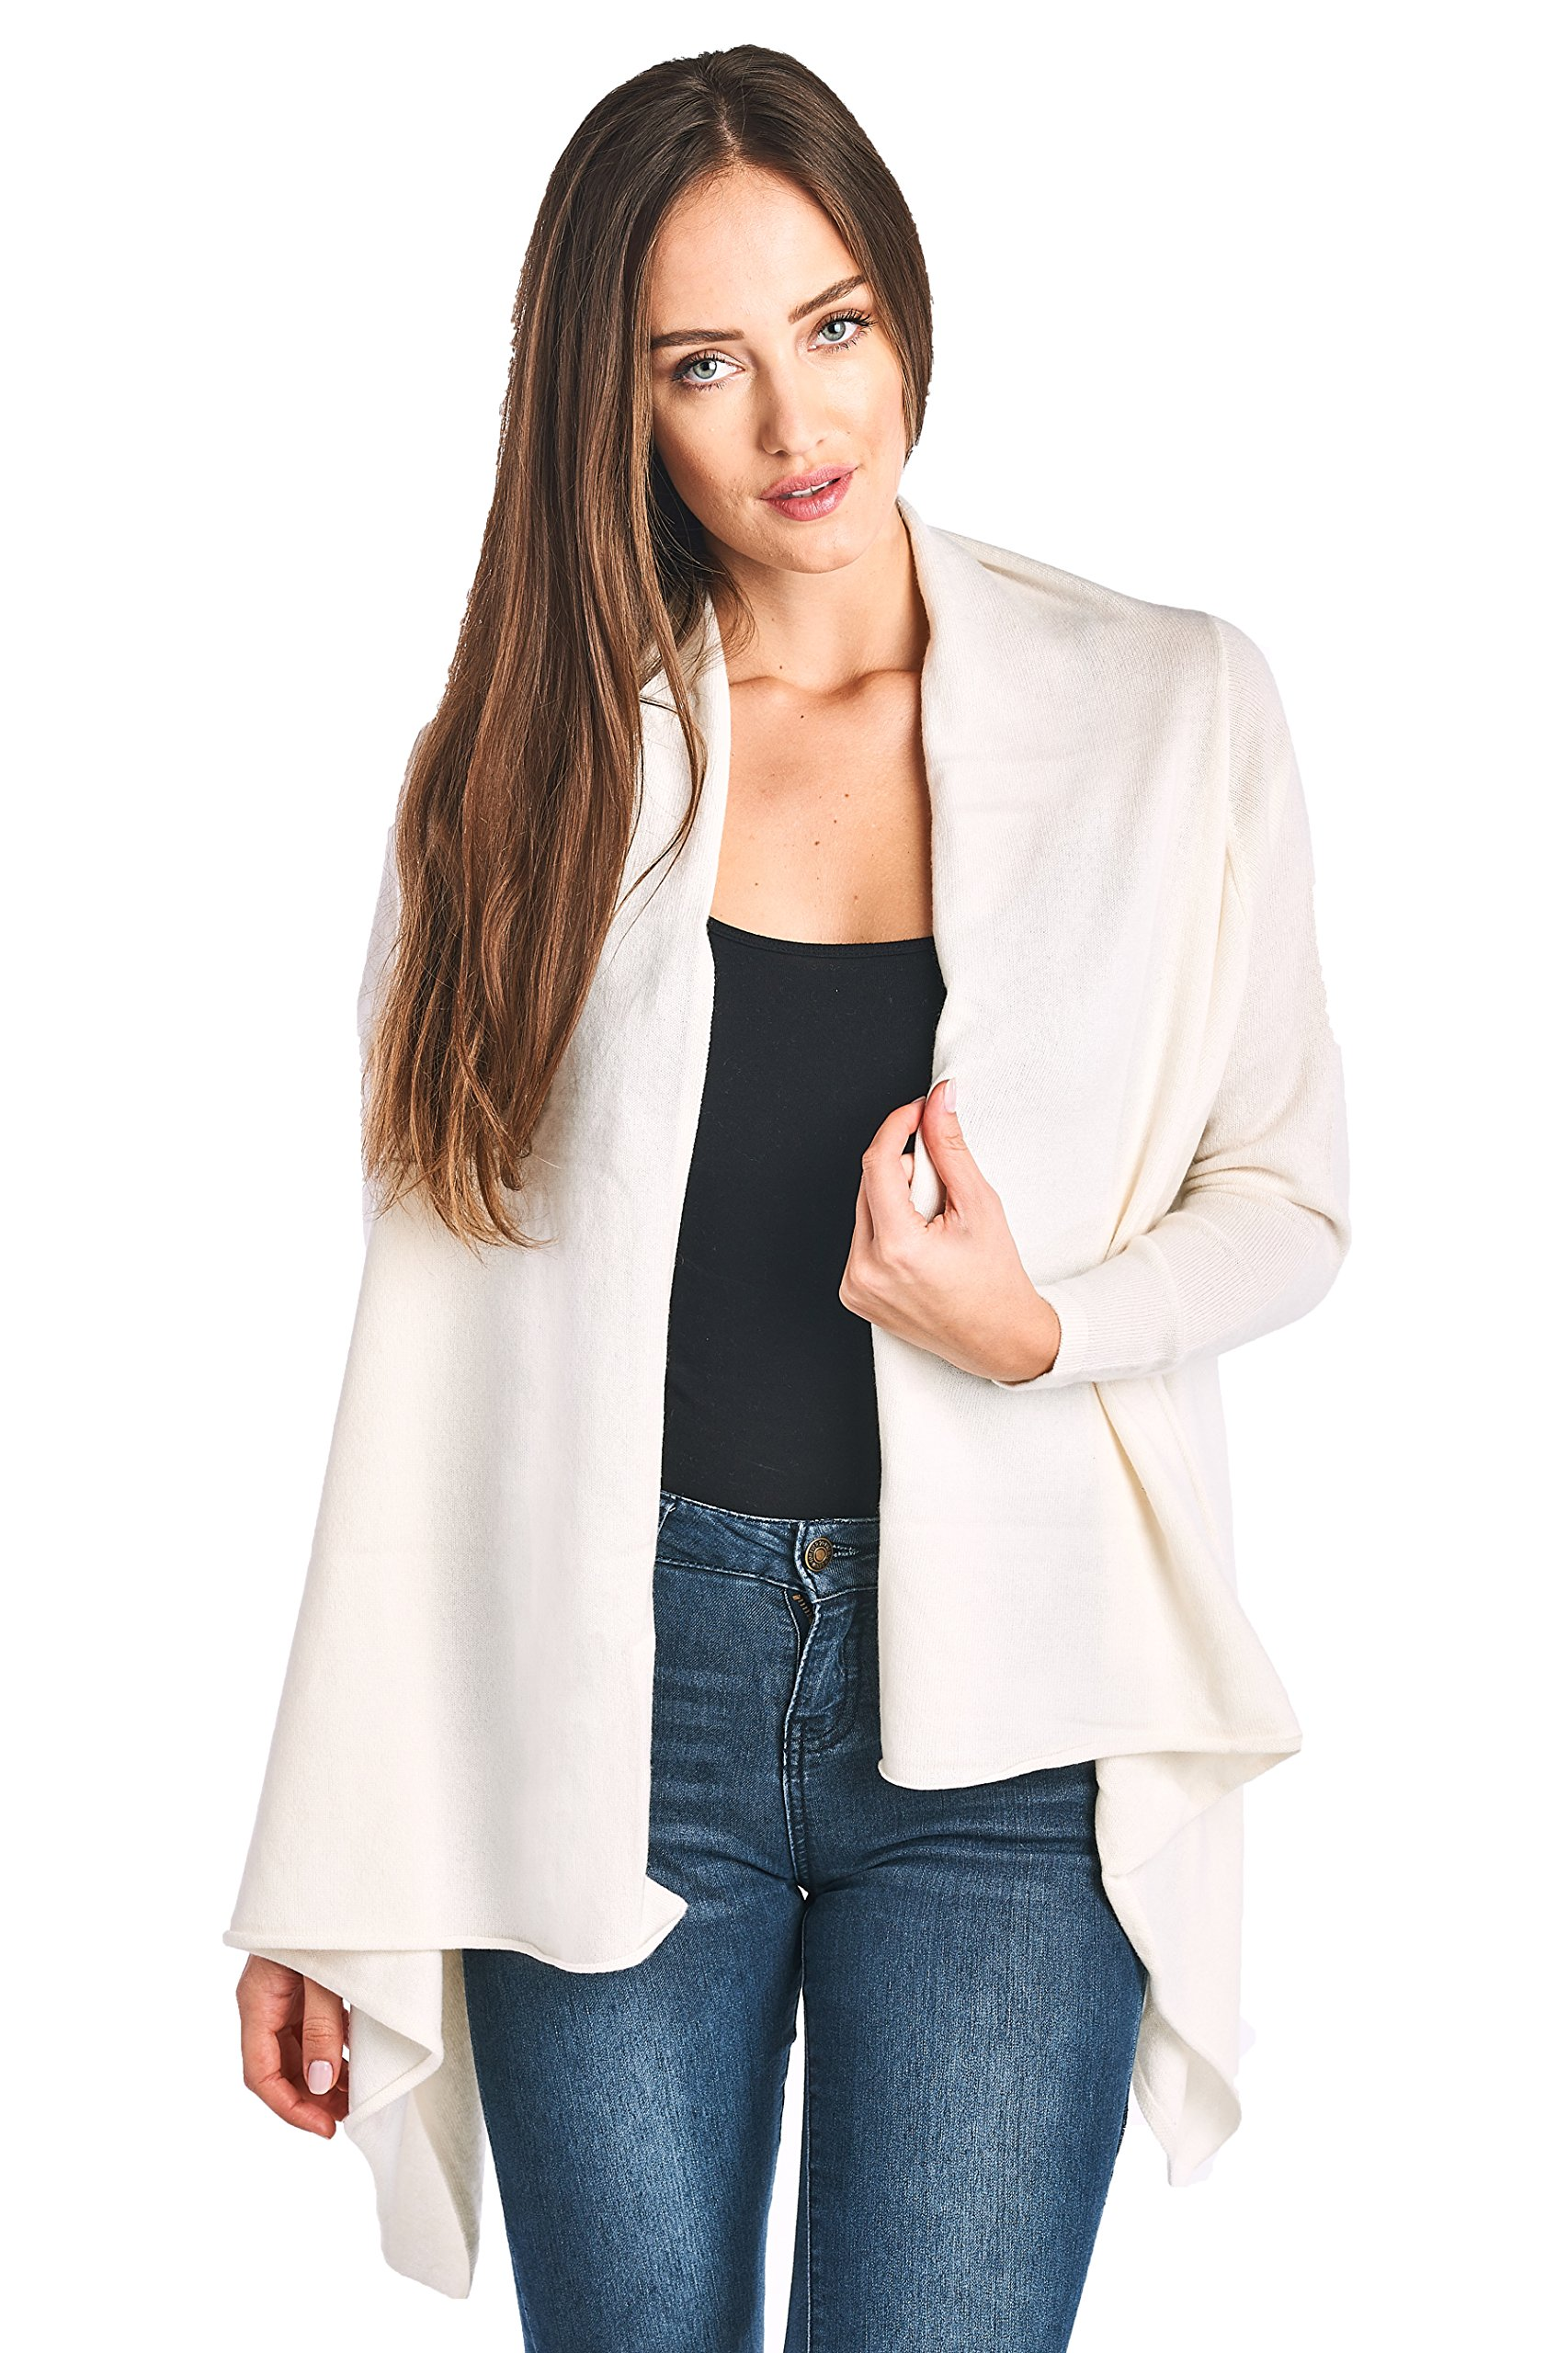 High Style Women's 100% Cashmere Long Sleeve Front Asymmetric Hem Open Cardigan Sweater (17616, Cream, S)